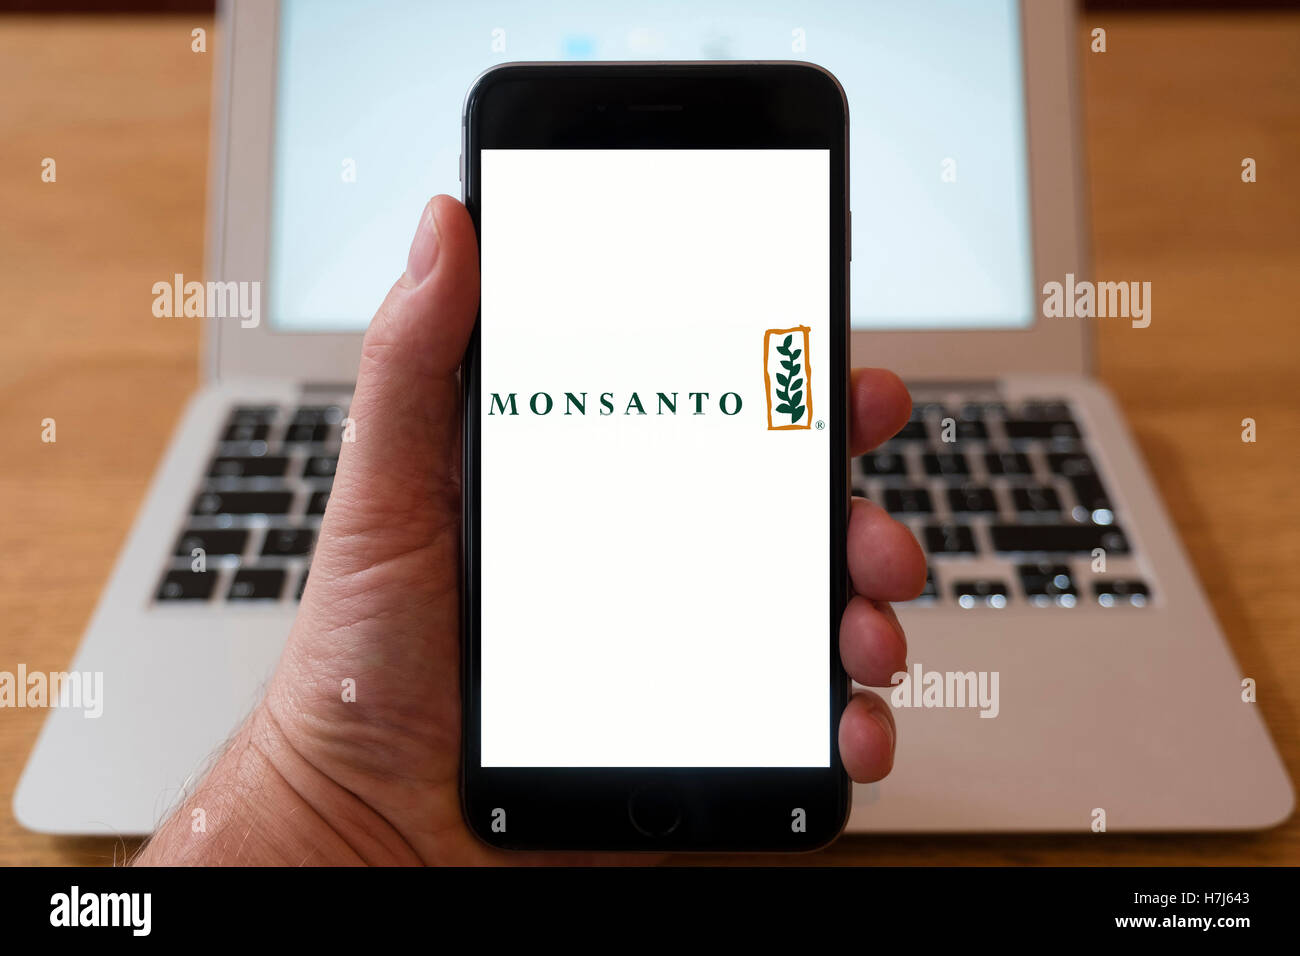 Using iPhone smart phone to display logo of Monsanto ;multinational agrochemical and agricultural biotechnology - Stock Image